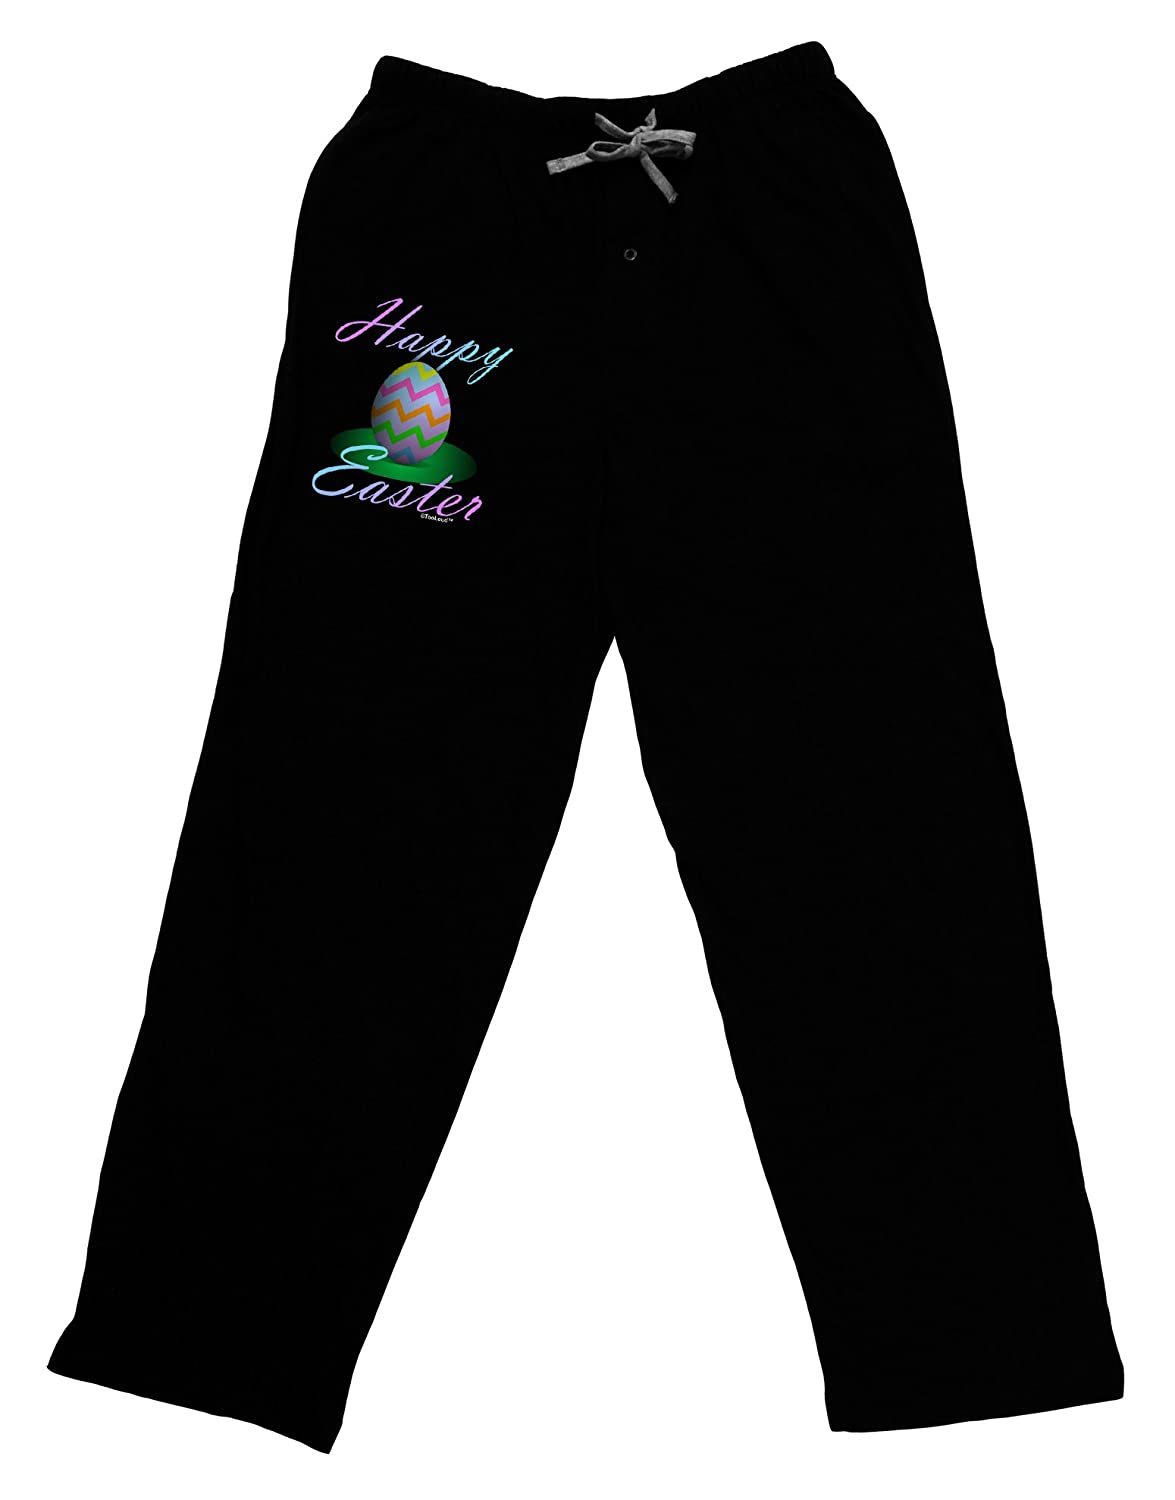 TooLoud One Happy Easter Egg Adult Lounge Pants